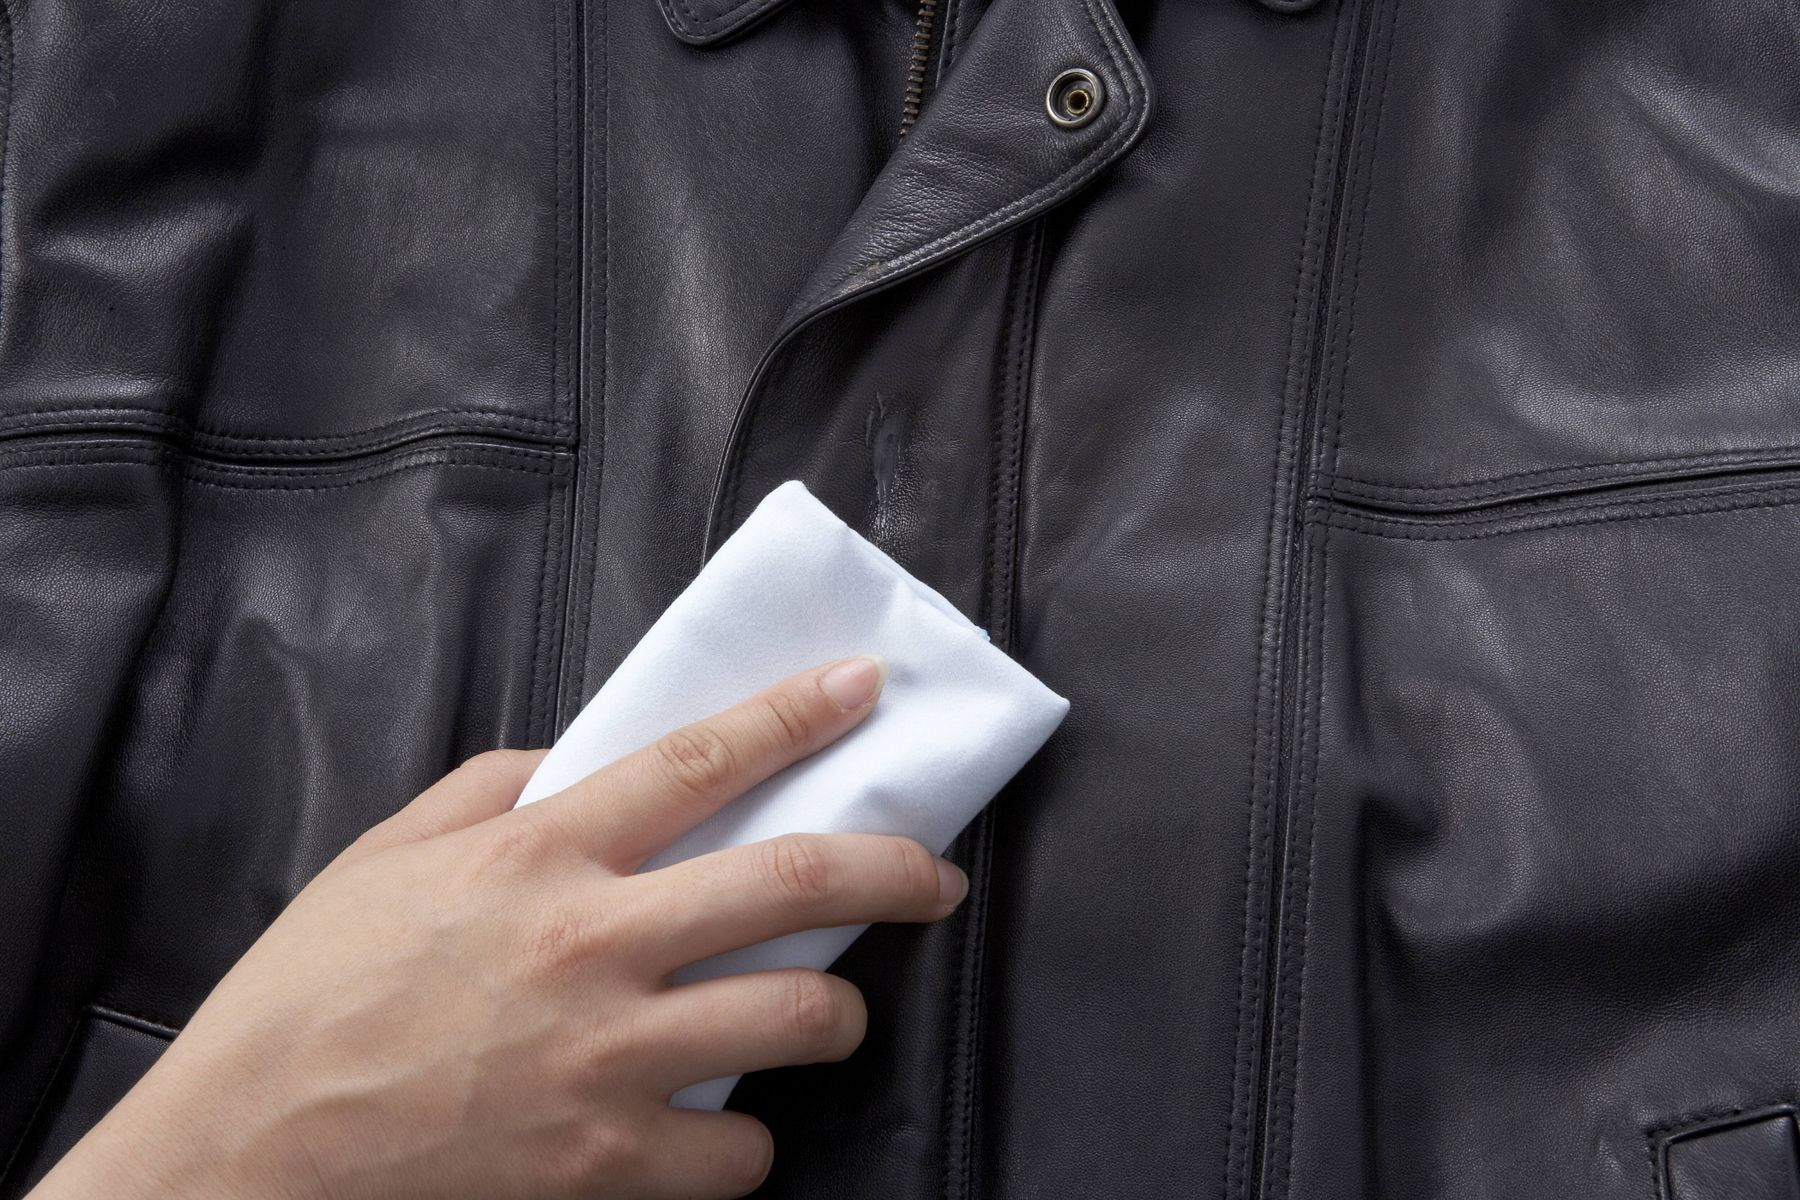 Did the crow spoil your perfectly sleek and shiny leather jacket? Here are a few methods you can try to get rid of stains from your leather apparels